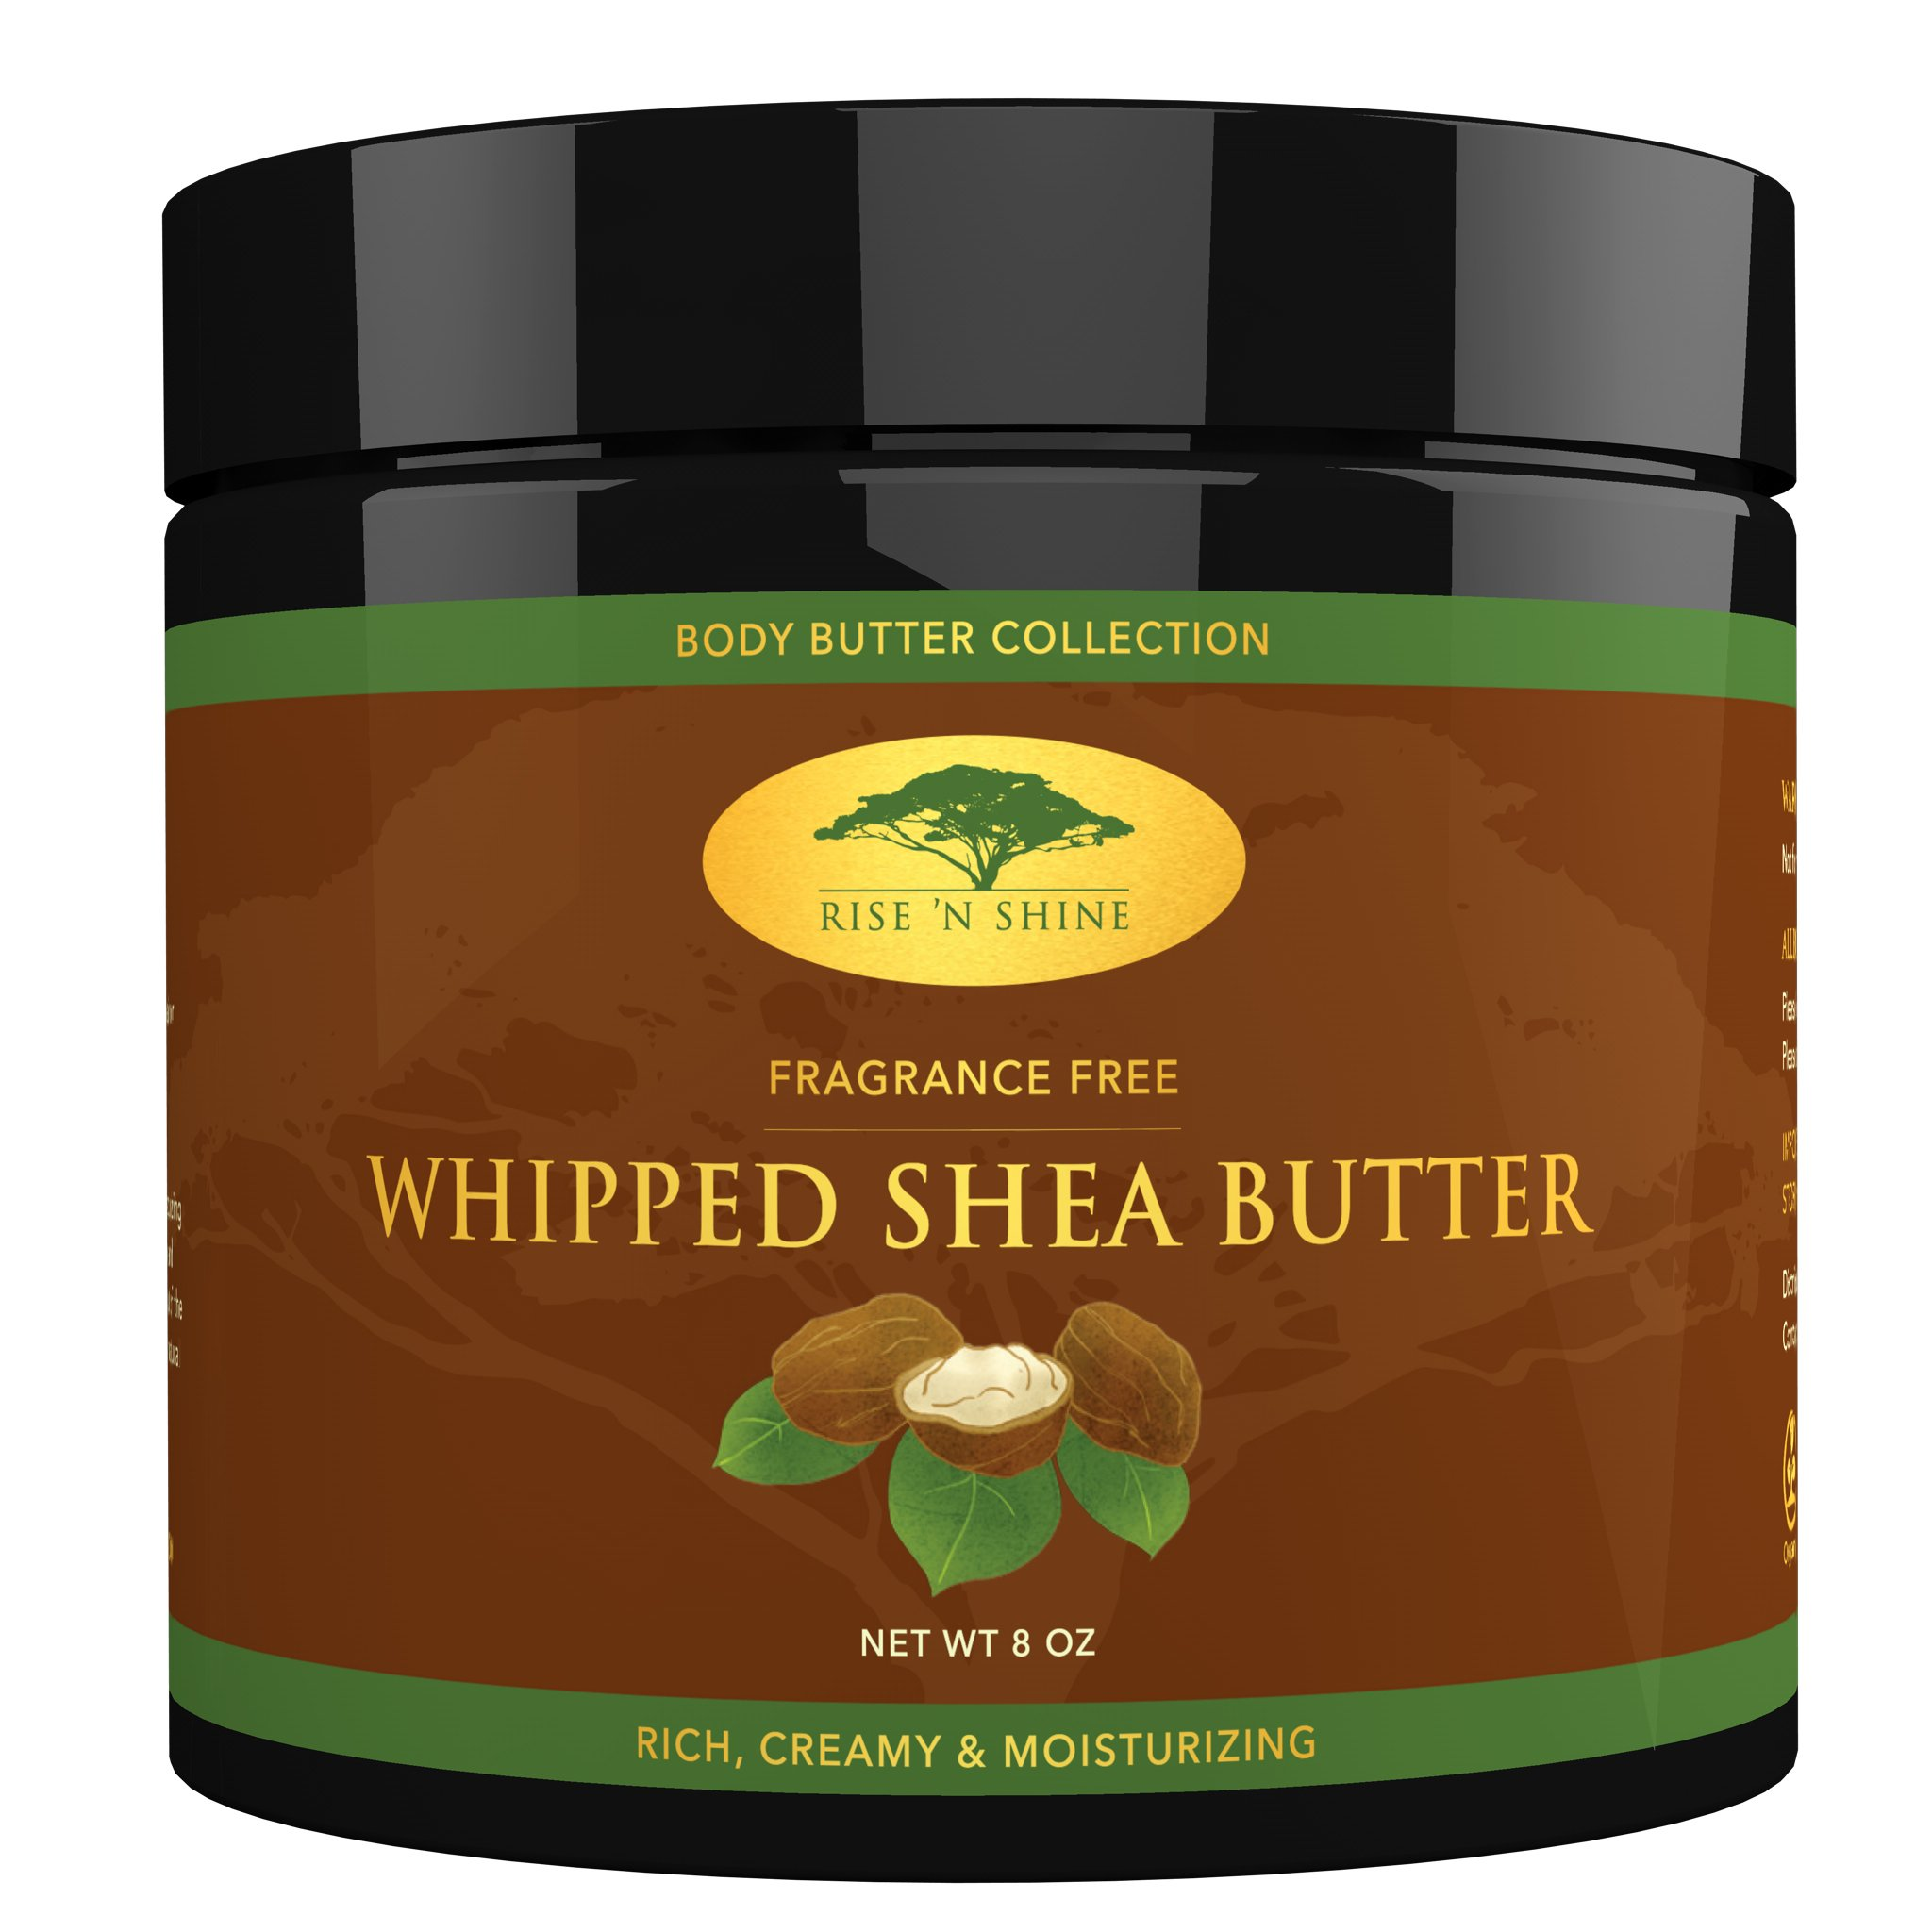 Whipped African Shea Butter Cream - Pure 100% All Natural Organic Moisture for Soft Skin and Natural Hair - Body Butter Improves Blemishes Stretch Marks Scars Wrinkles Eczema & Dermatitis (8 oz) by Rise 'N Shine Online